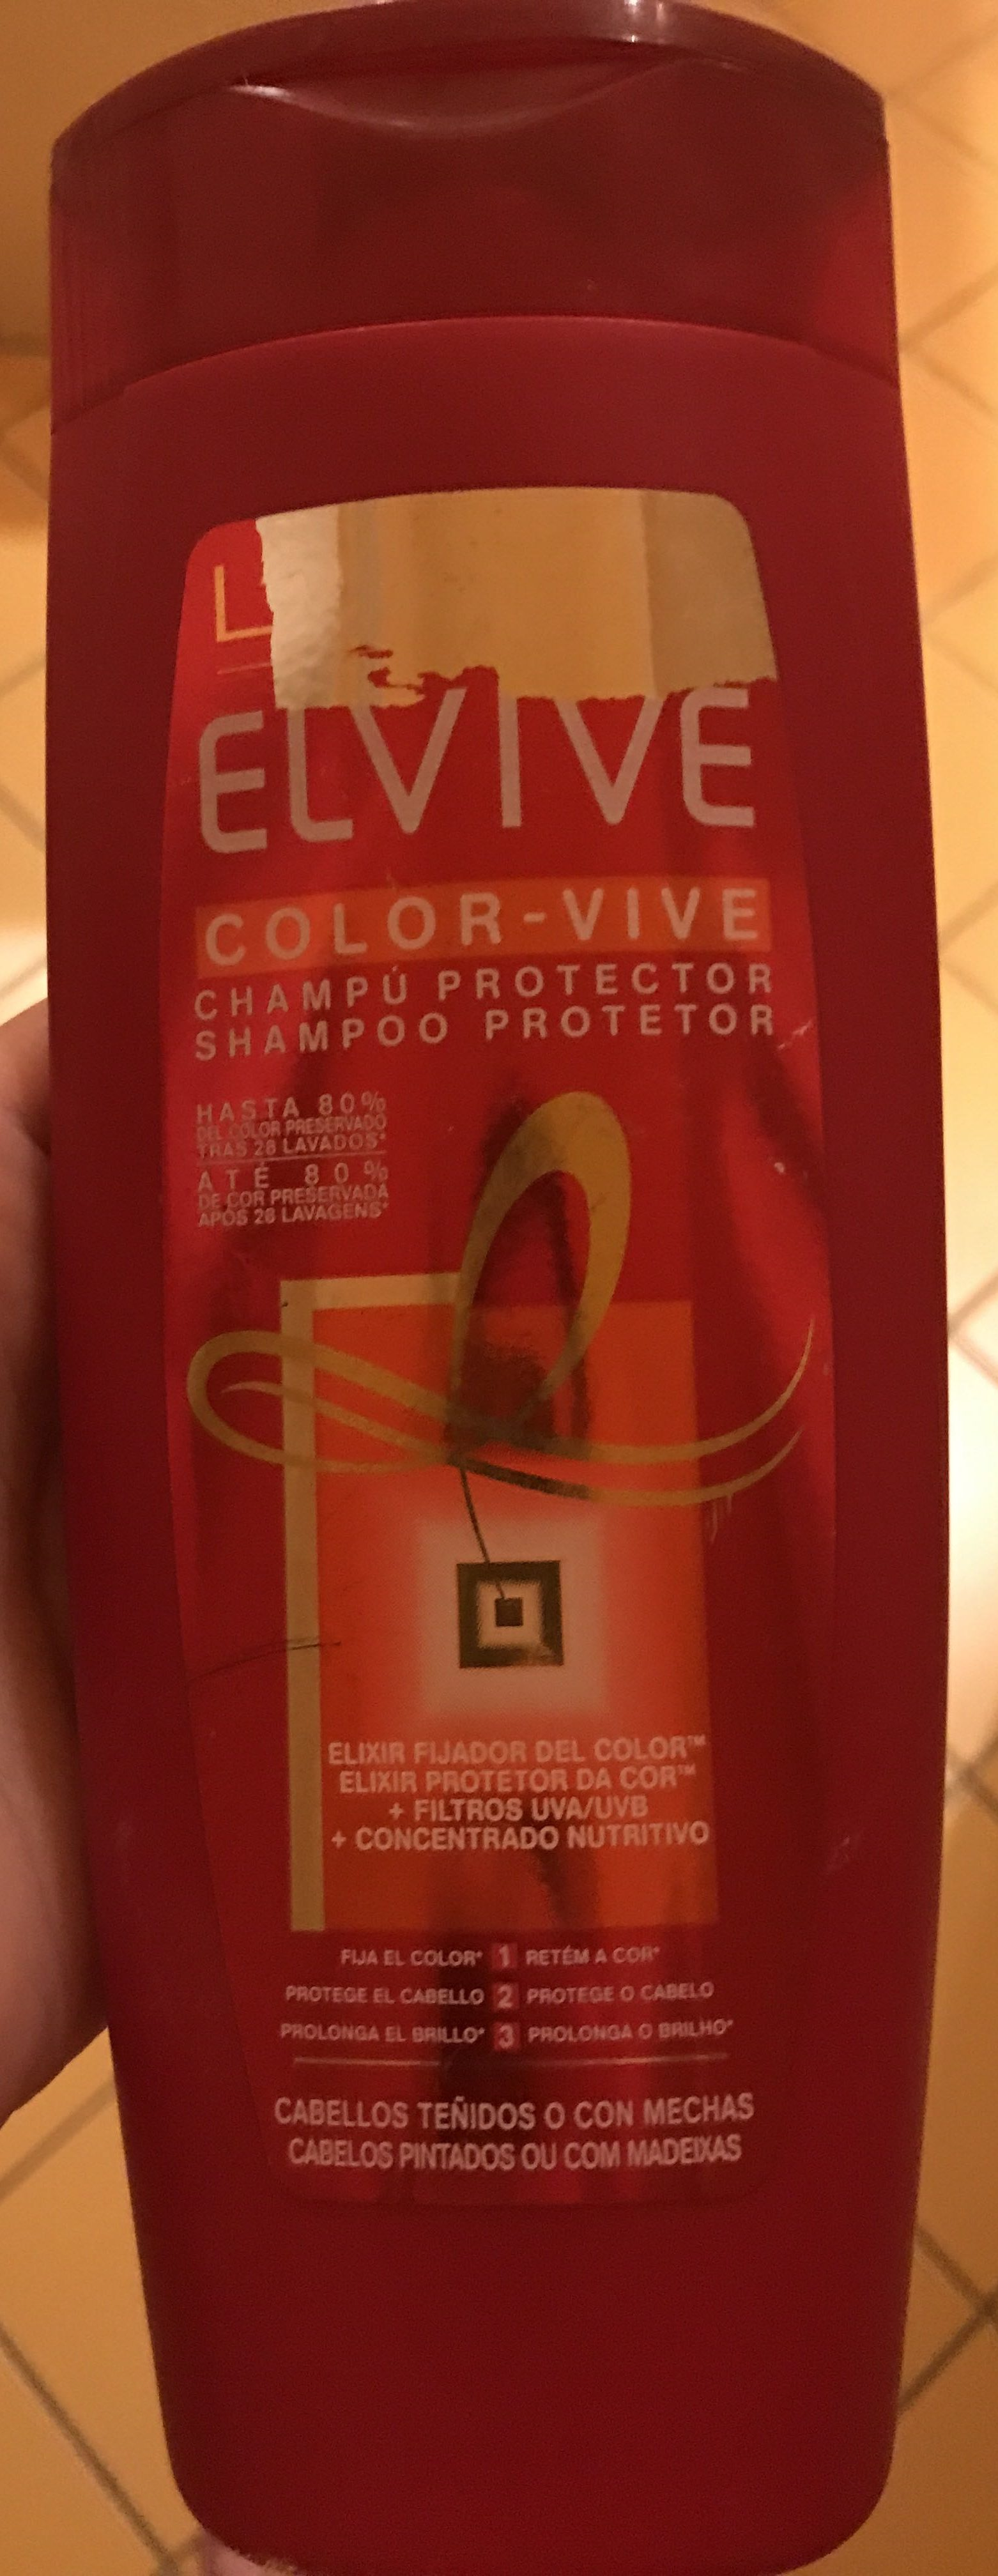 Elvive Color-vive - Product - fr